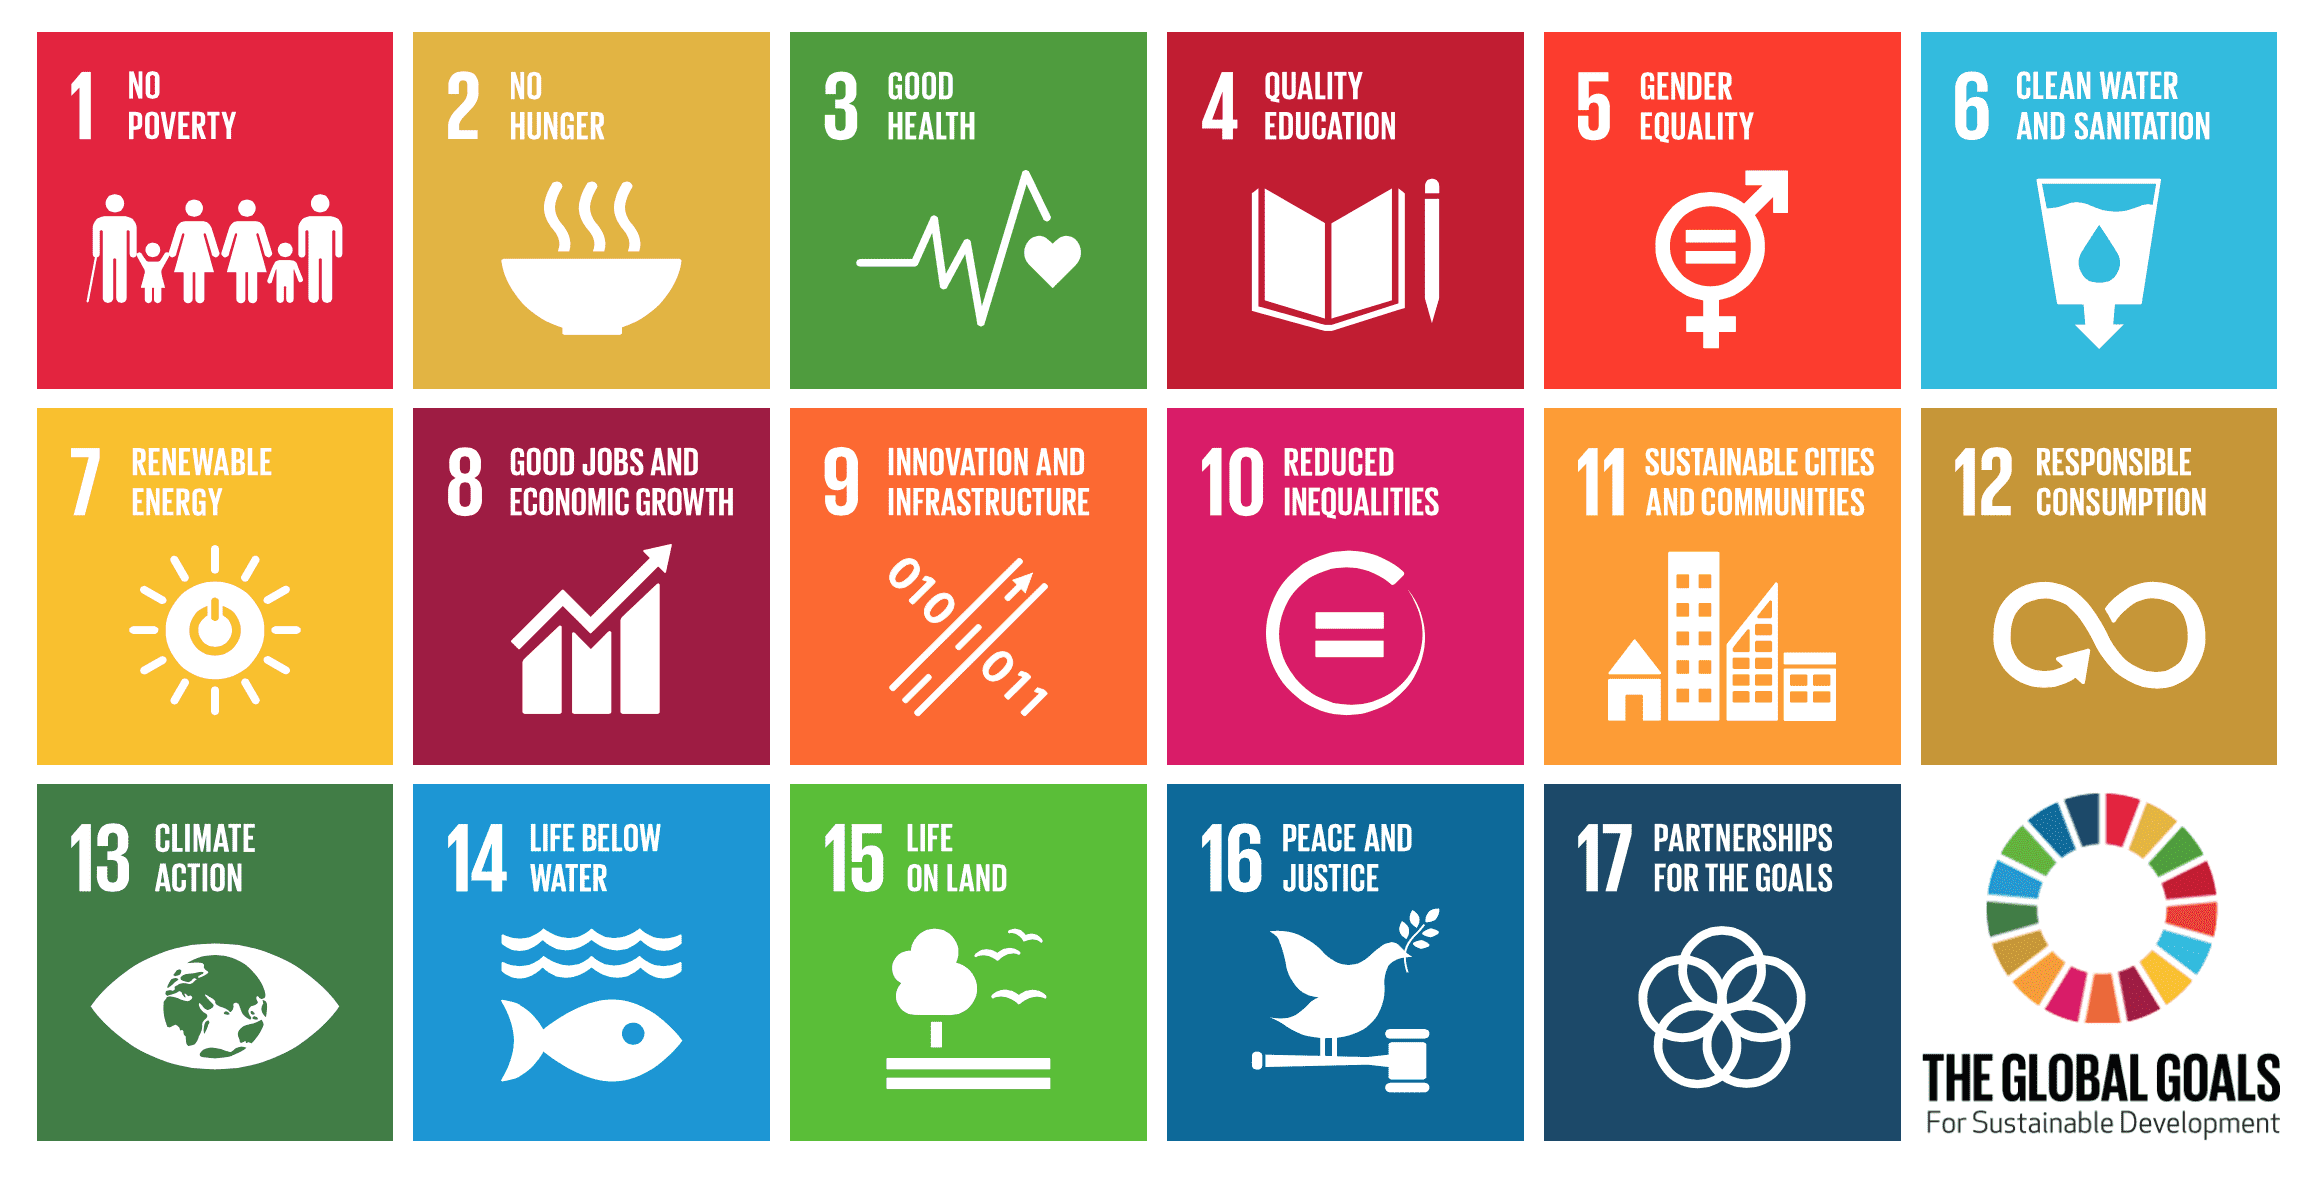 Impact Hub Networking: Innovations in Quality Remote Education (SDG 4)